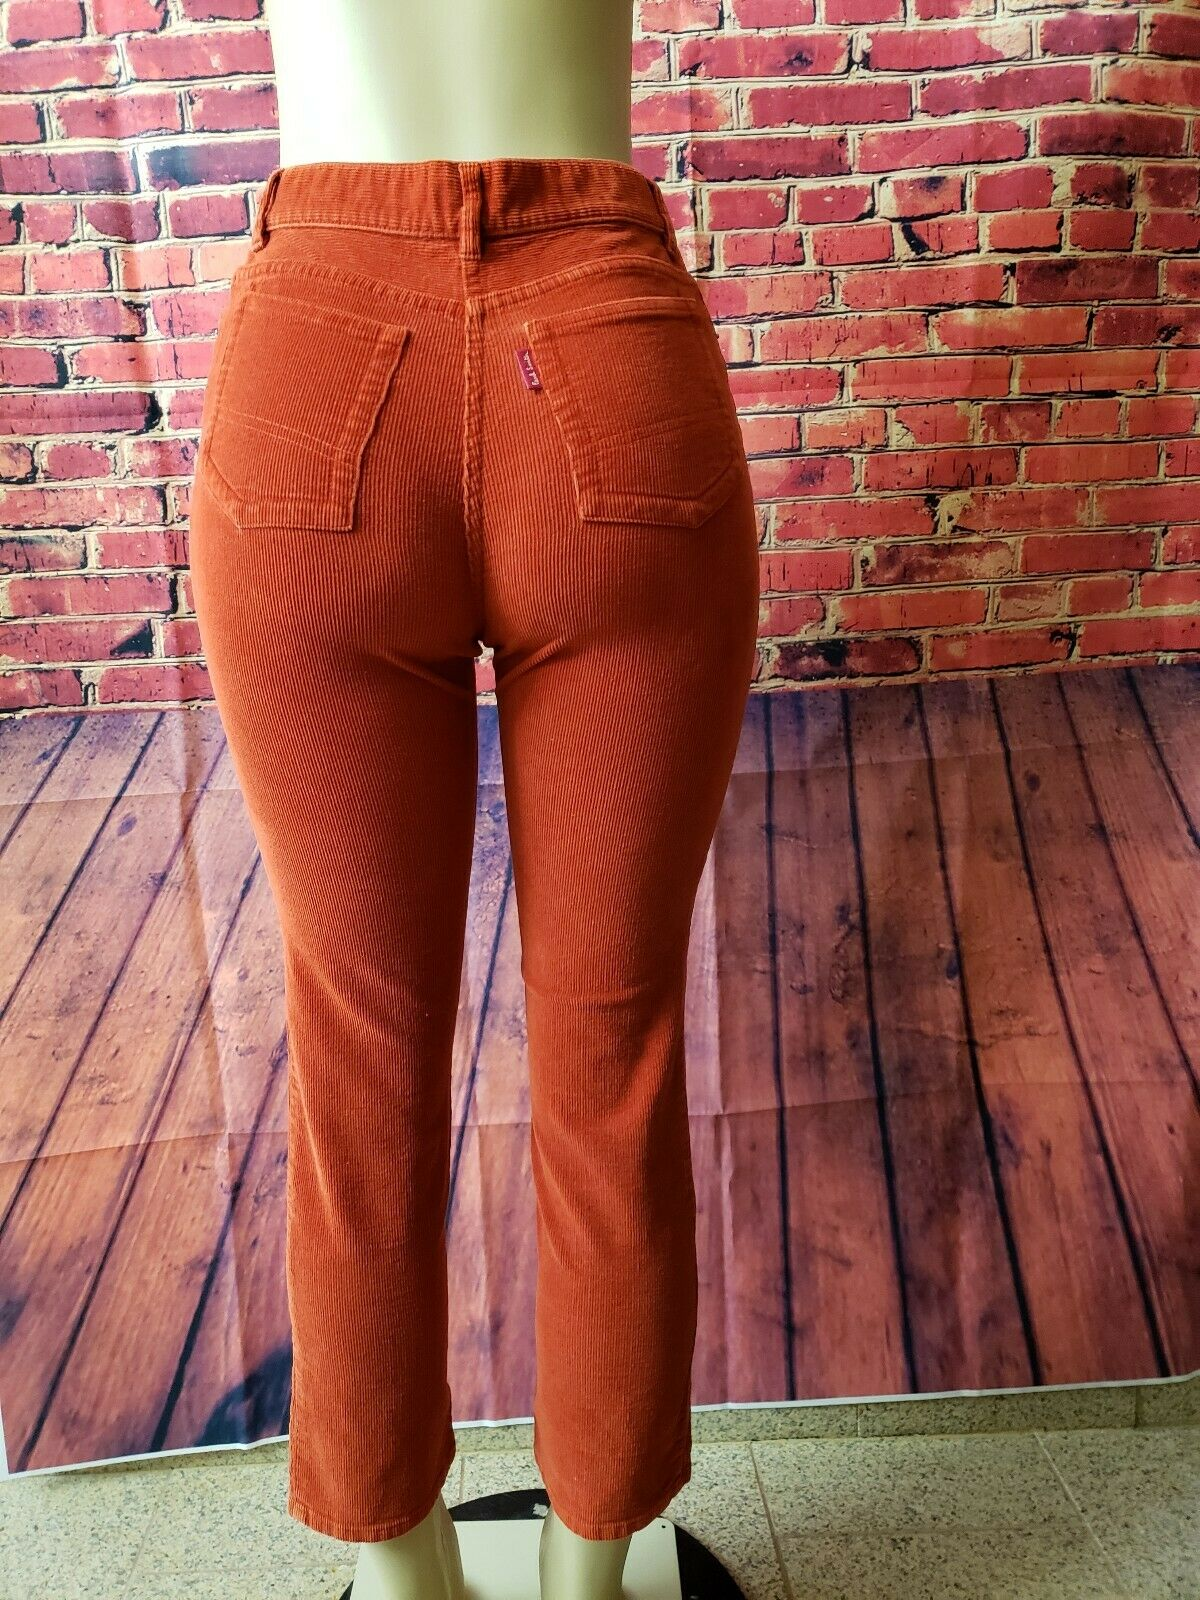 PAUL SMITH  Corduroy Trousers Red pants Size US 10